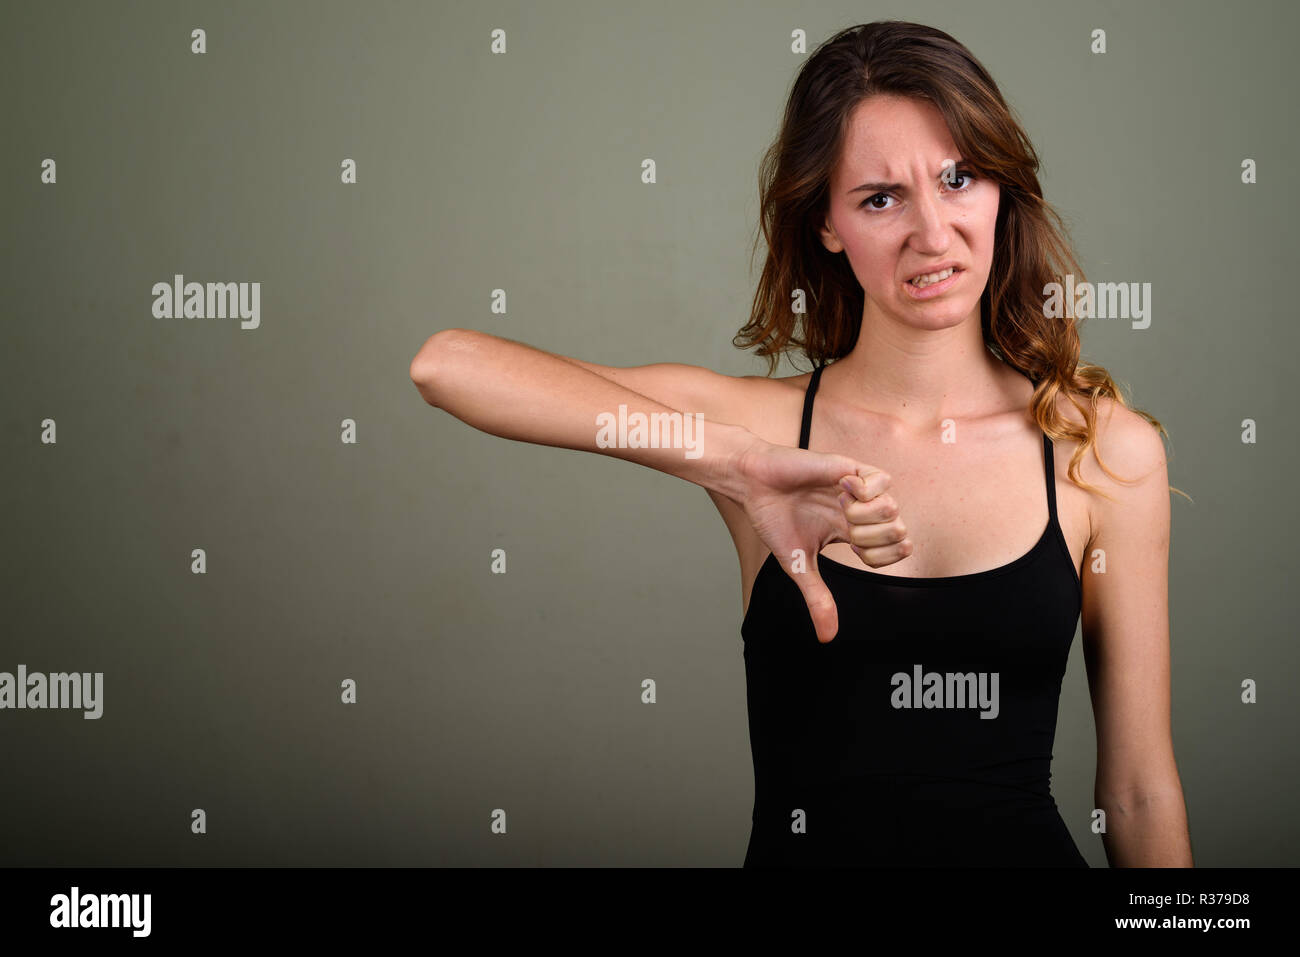 Young beautiful woman wearing sleeveless top against colored bac - Stock Image